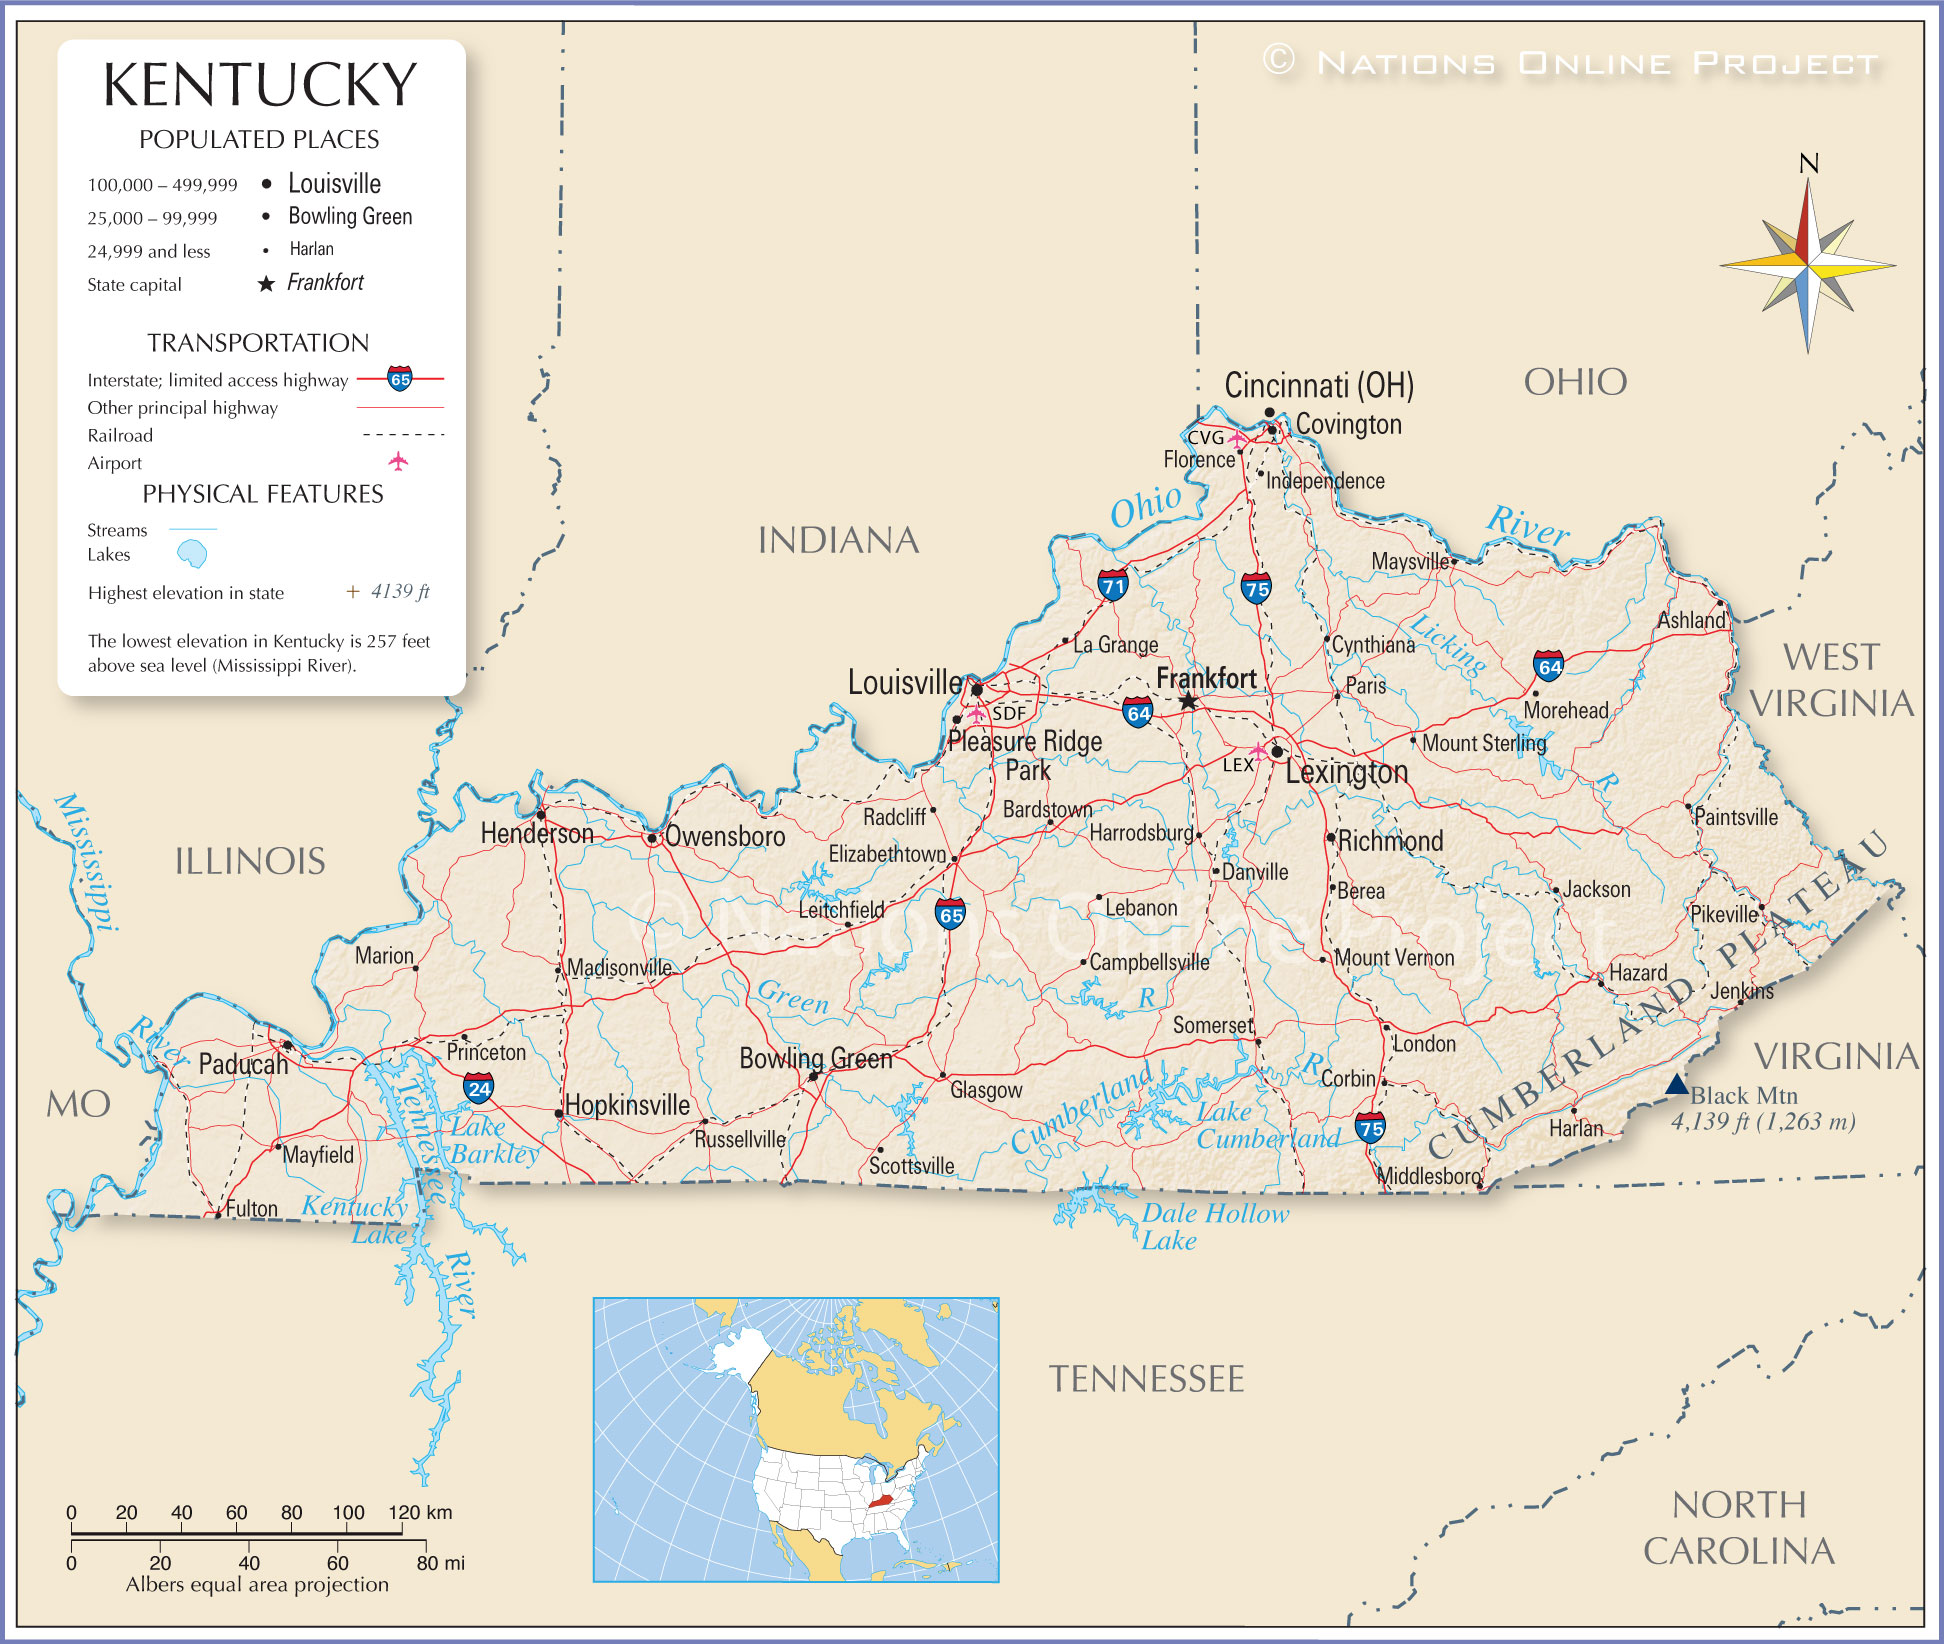 Kentucky On Usa Map.Reference Maps Of Kentucky Usa Nations Online Project